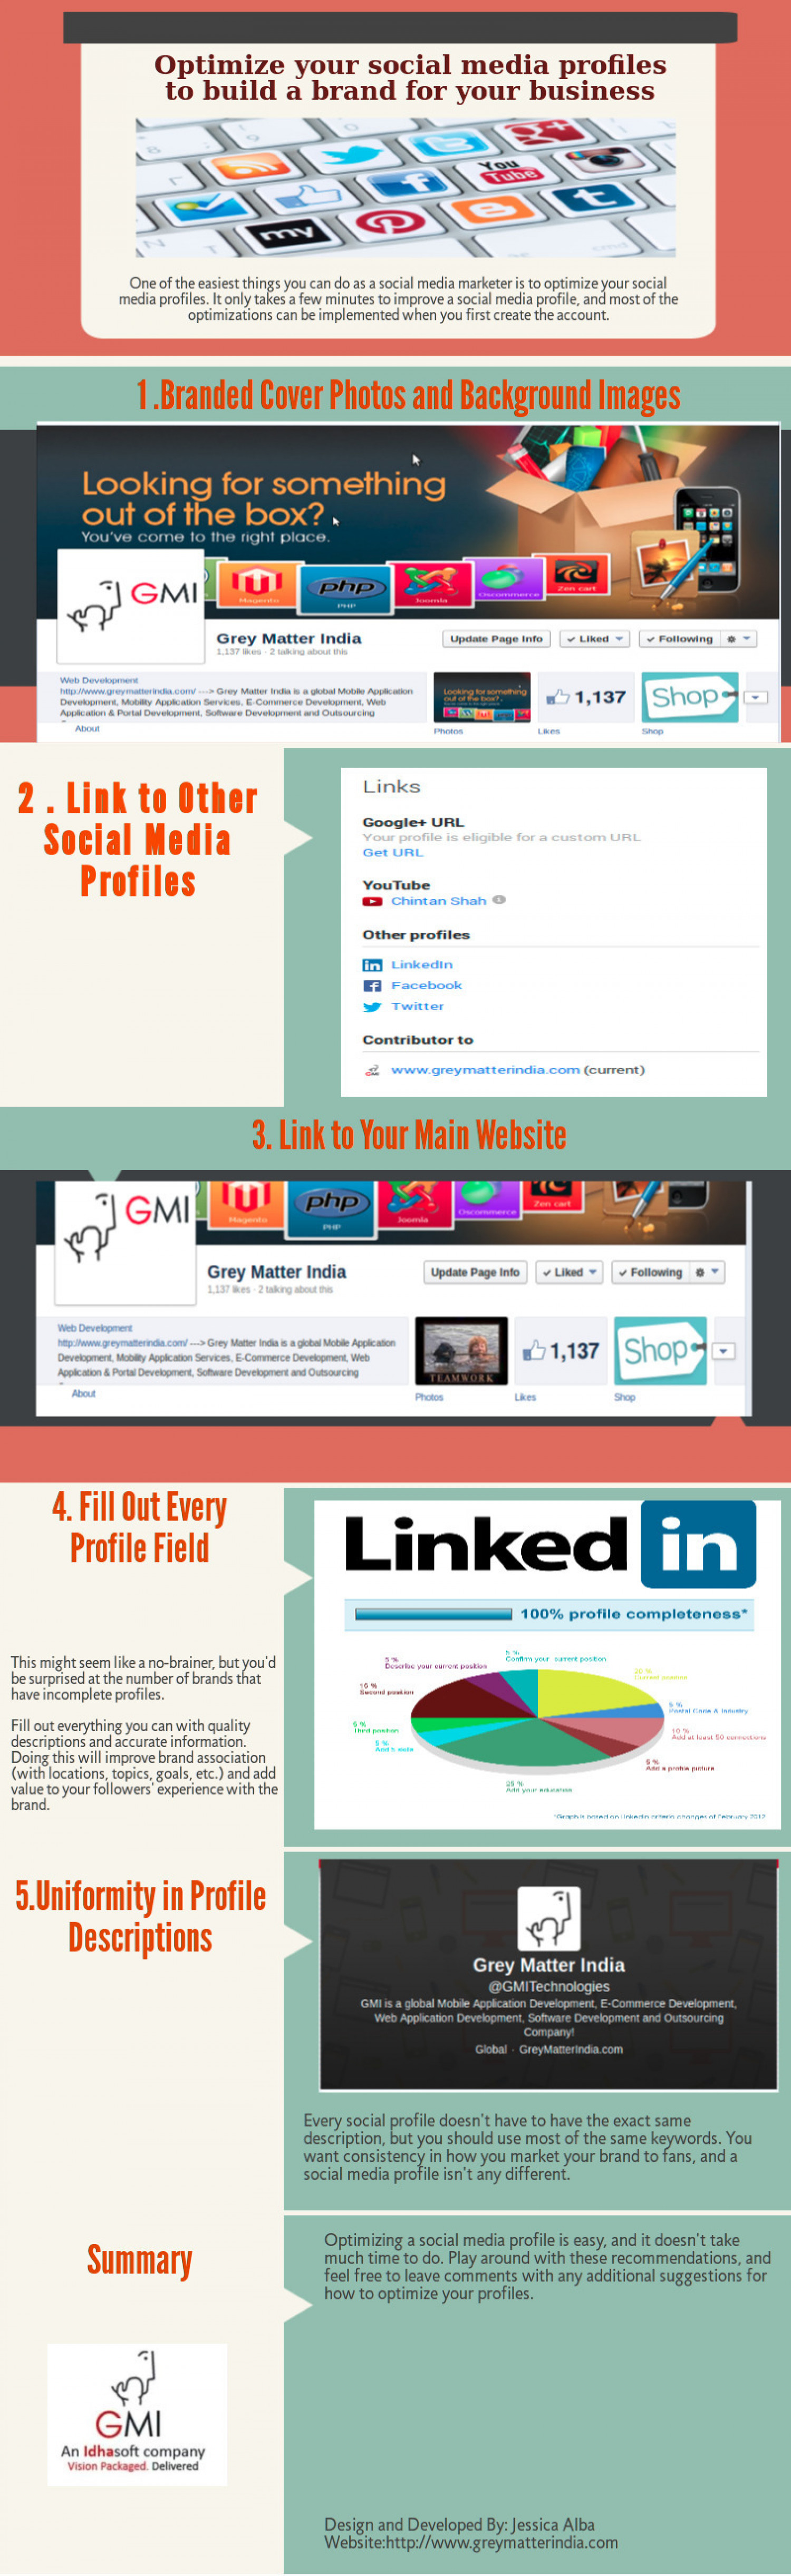 Optimize Your Social Media Profiles to Build A Brand for Your Business Infographic